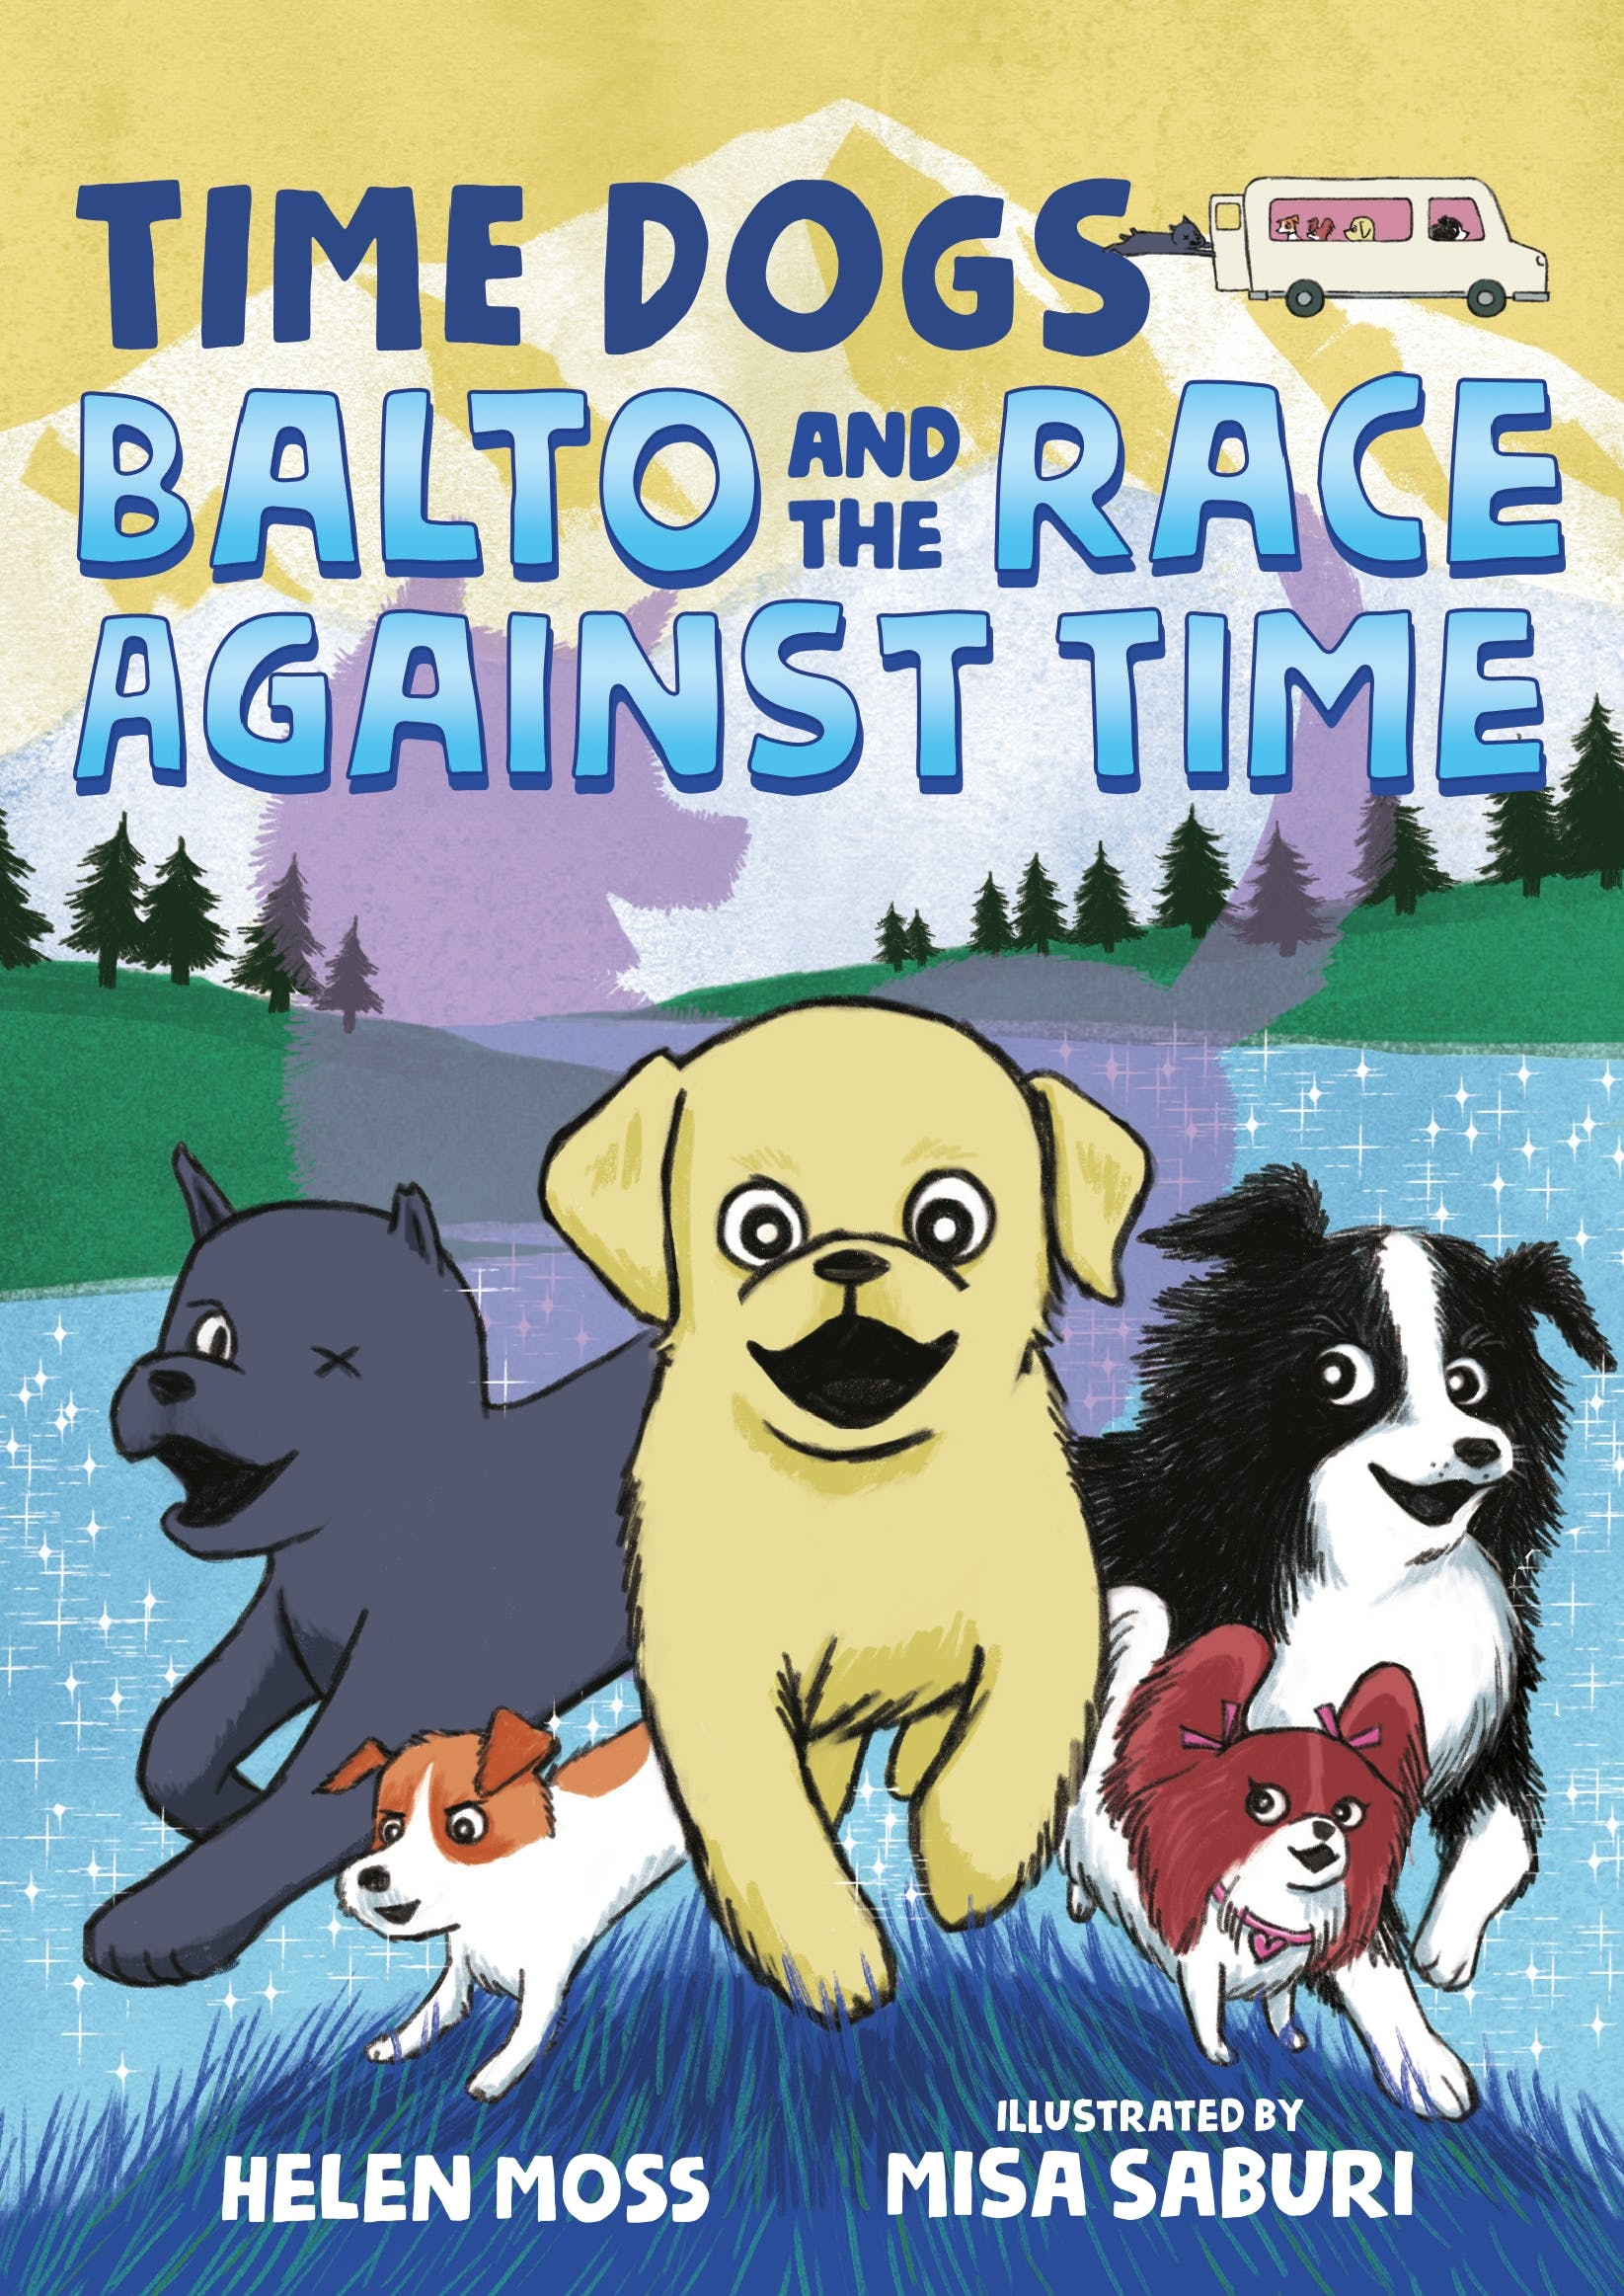 Image of Time Dogs: Balto and the Race Against Time